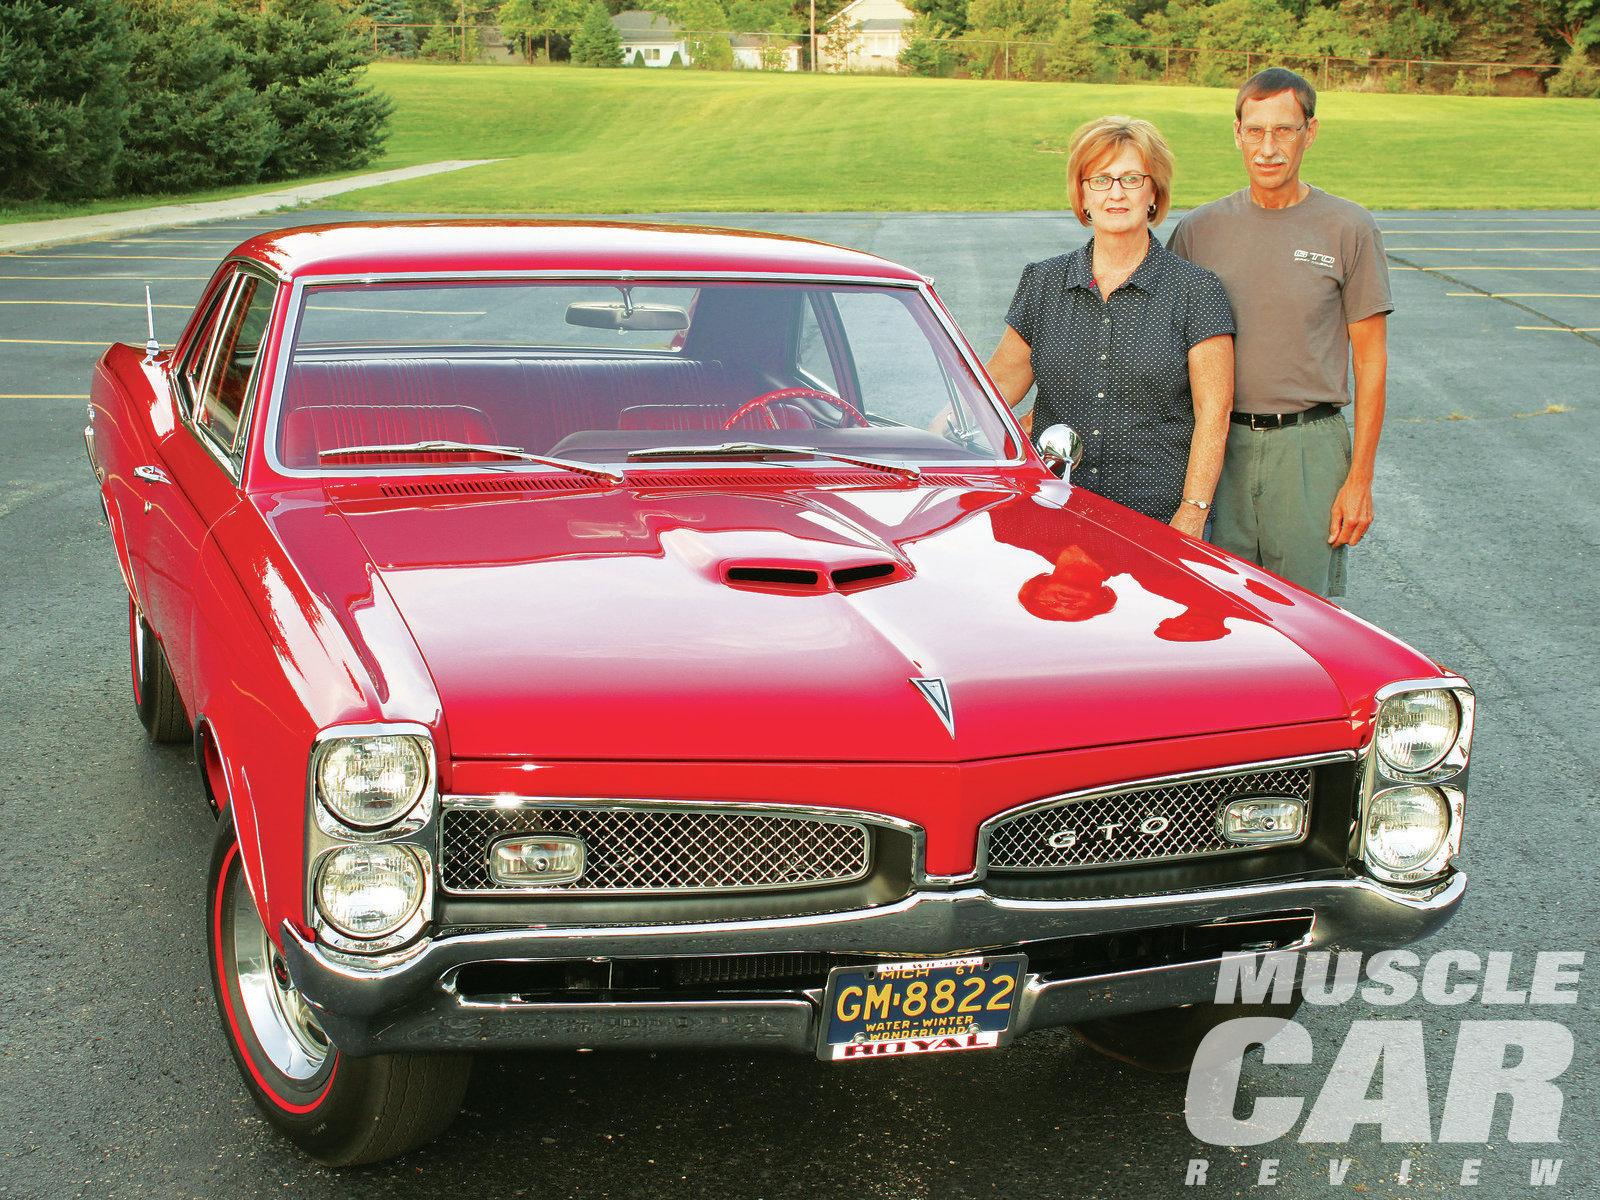 Dennis and Pat are enjoying their GTO all over again, as a show car now.